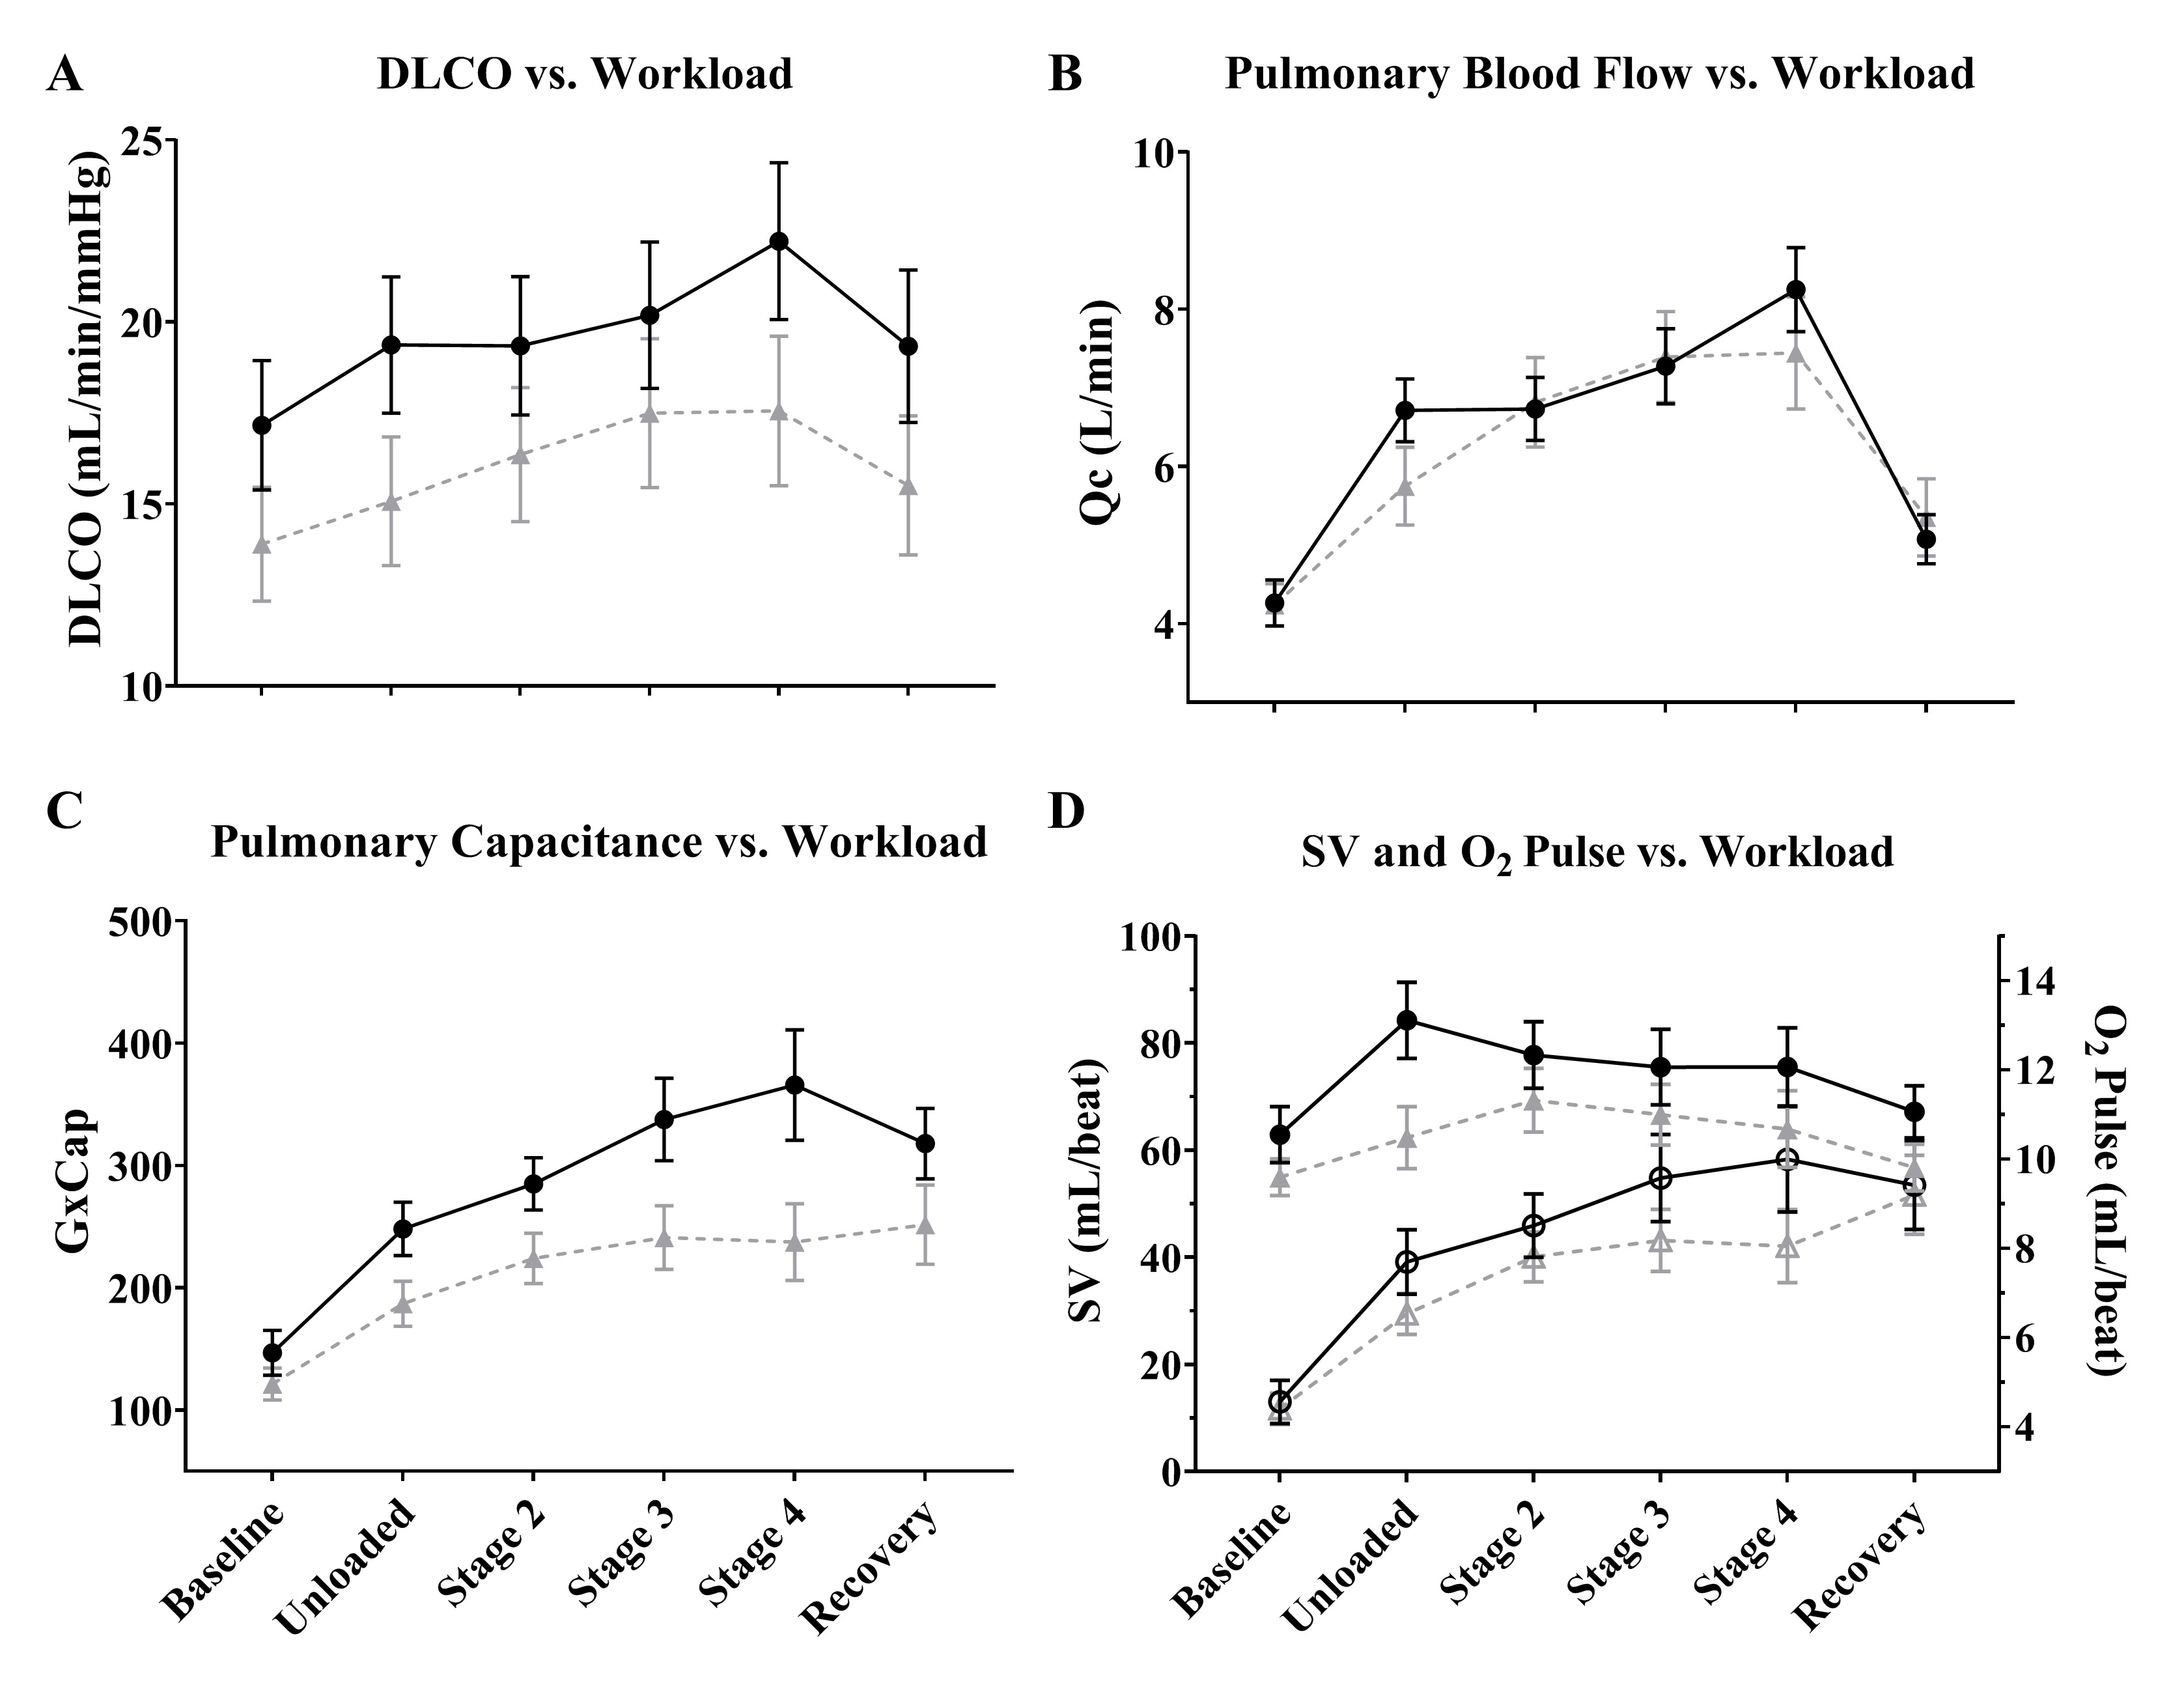 Alveolar-Capillary Recruitment: The Relationship of Diffusion Capacity of the Lungs for Carbon Monoxide to Pulmonary Blood Flow in Response to Exercise in PAH Patients